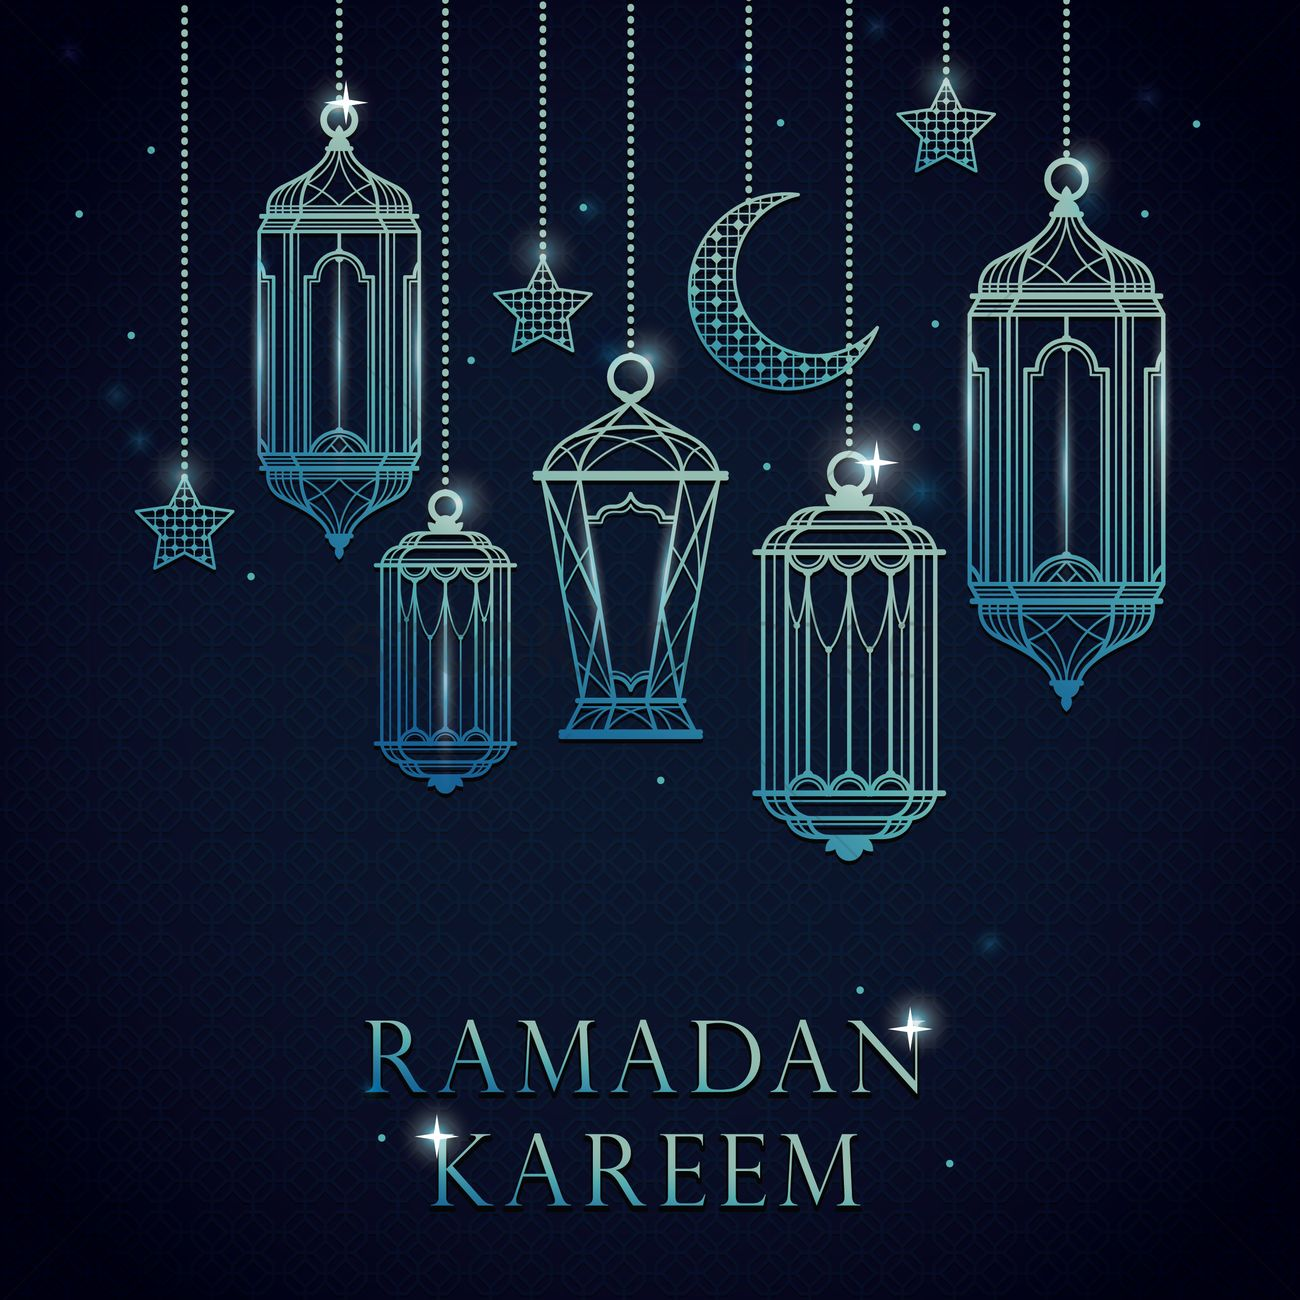 Ramadan Kareem Greeting Vector Image 1826965 Stockunlimited